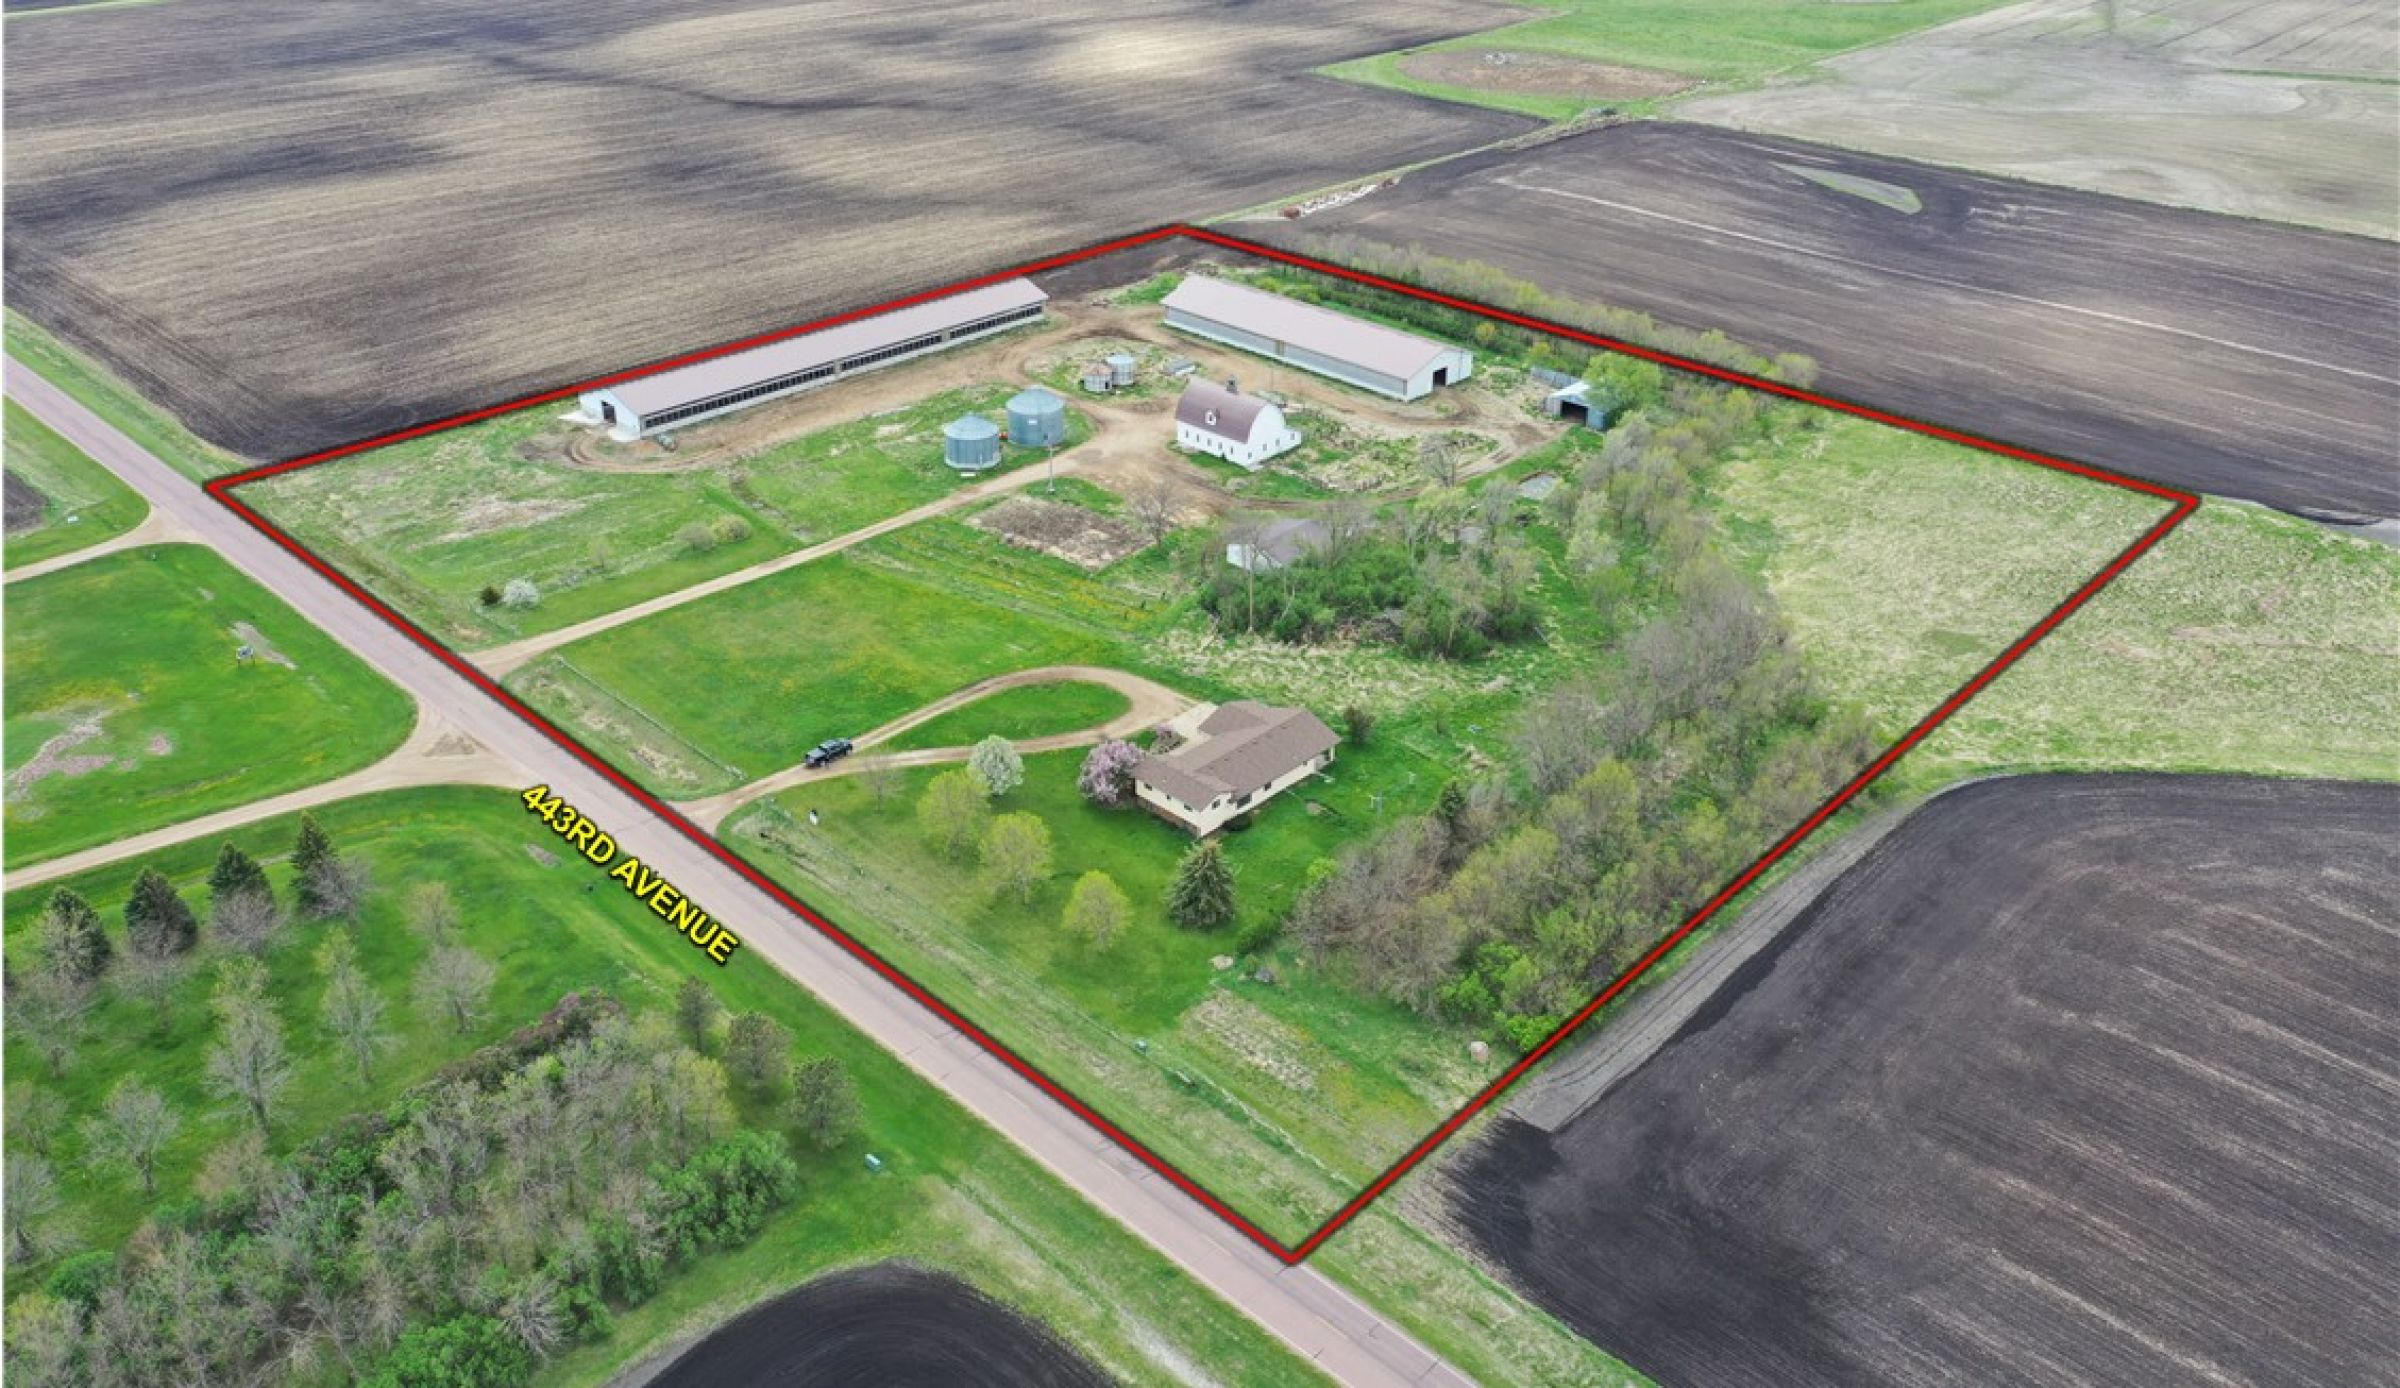 residential-auctions-land-turner-county-south-dakota-12-acres-listing-number-14971-3-2020-06-02-151910.jpg